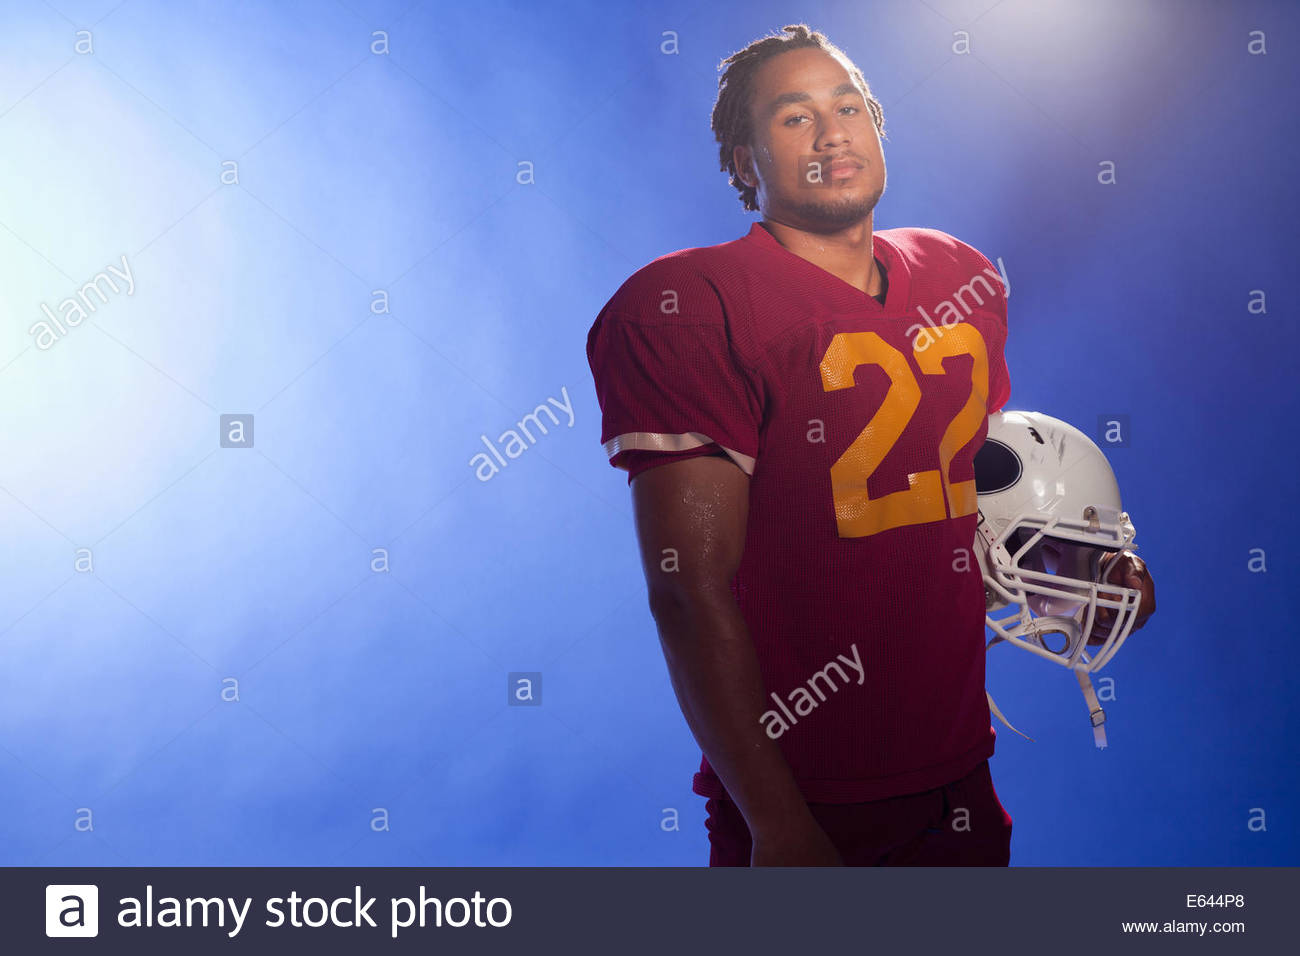 Football player carrying helmet - Stock Image